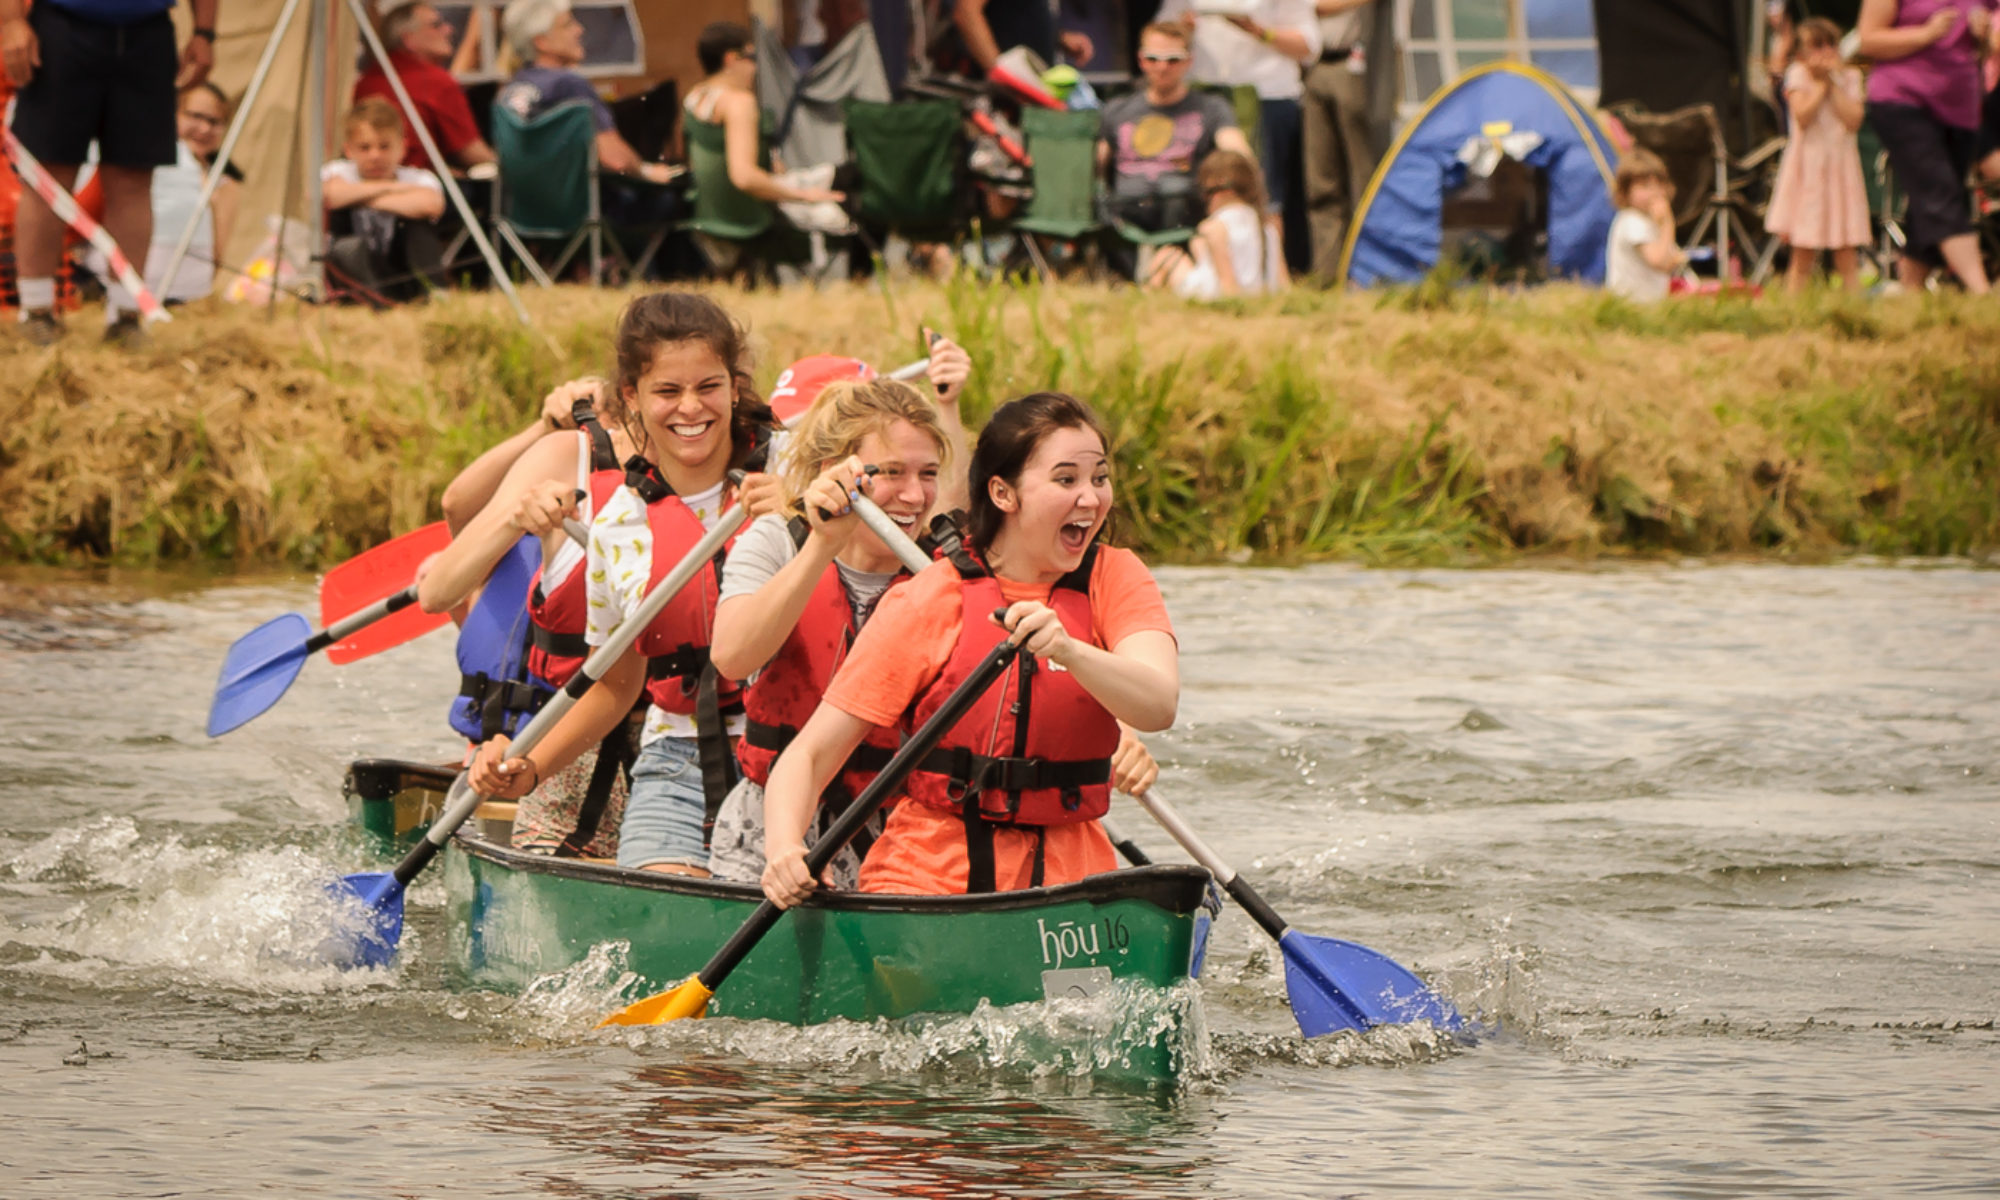 Goring and Streatley Regatta  and River Festival - 22 July 2017